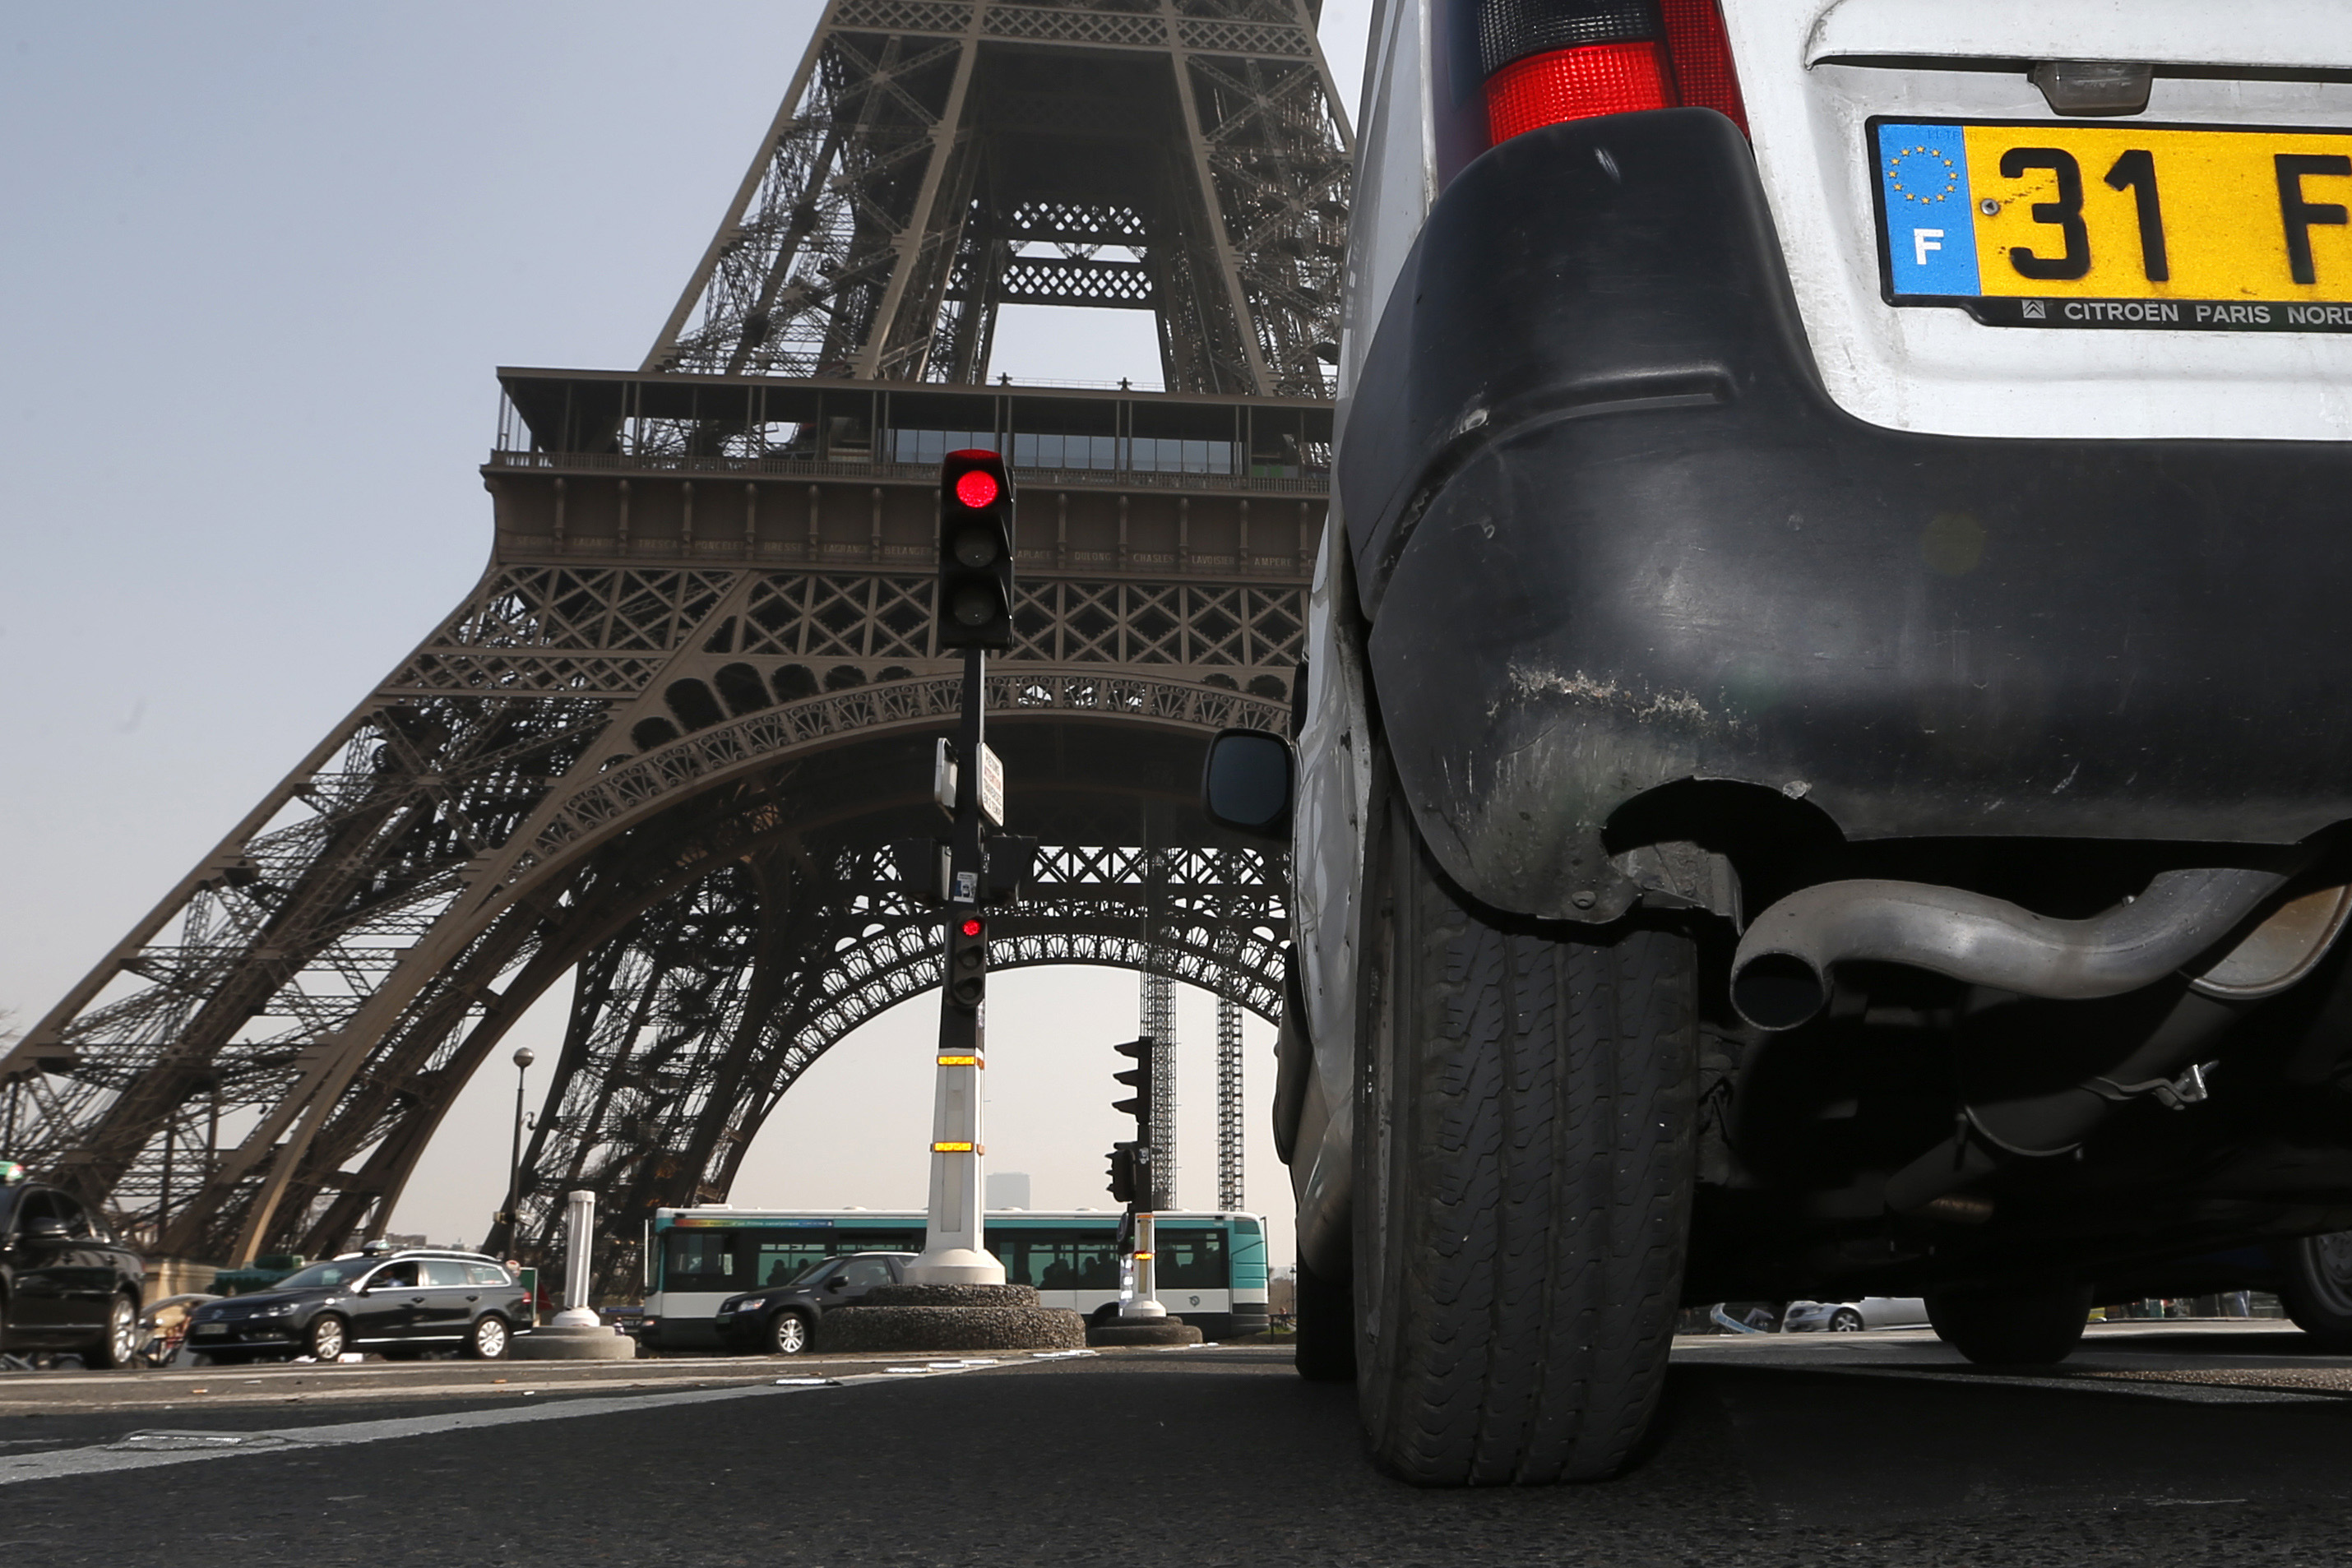 A car drives near the Eiffel tower in Paris during unusually high levels of pollution in France